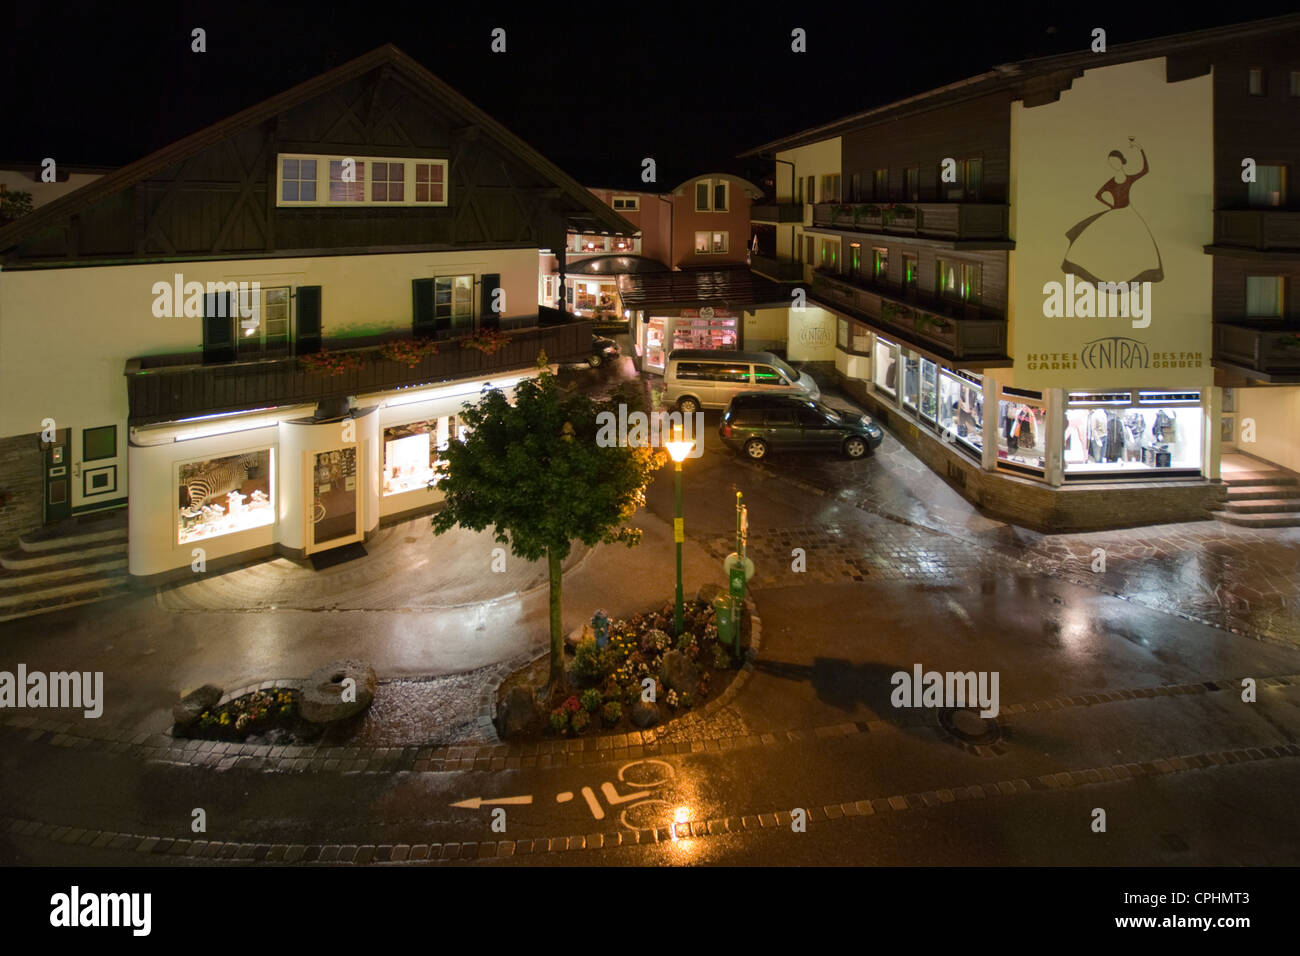 Nighttime view of Hauptstrasse, Mayrhofen with the wet cobbles illuminated by the shop windows - Stock Image